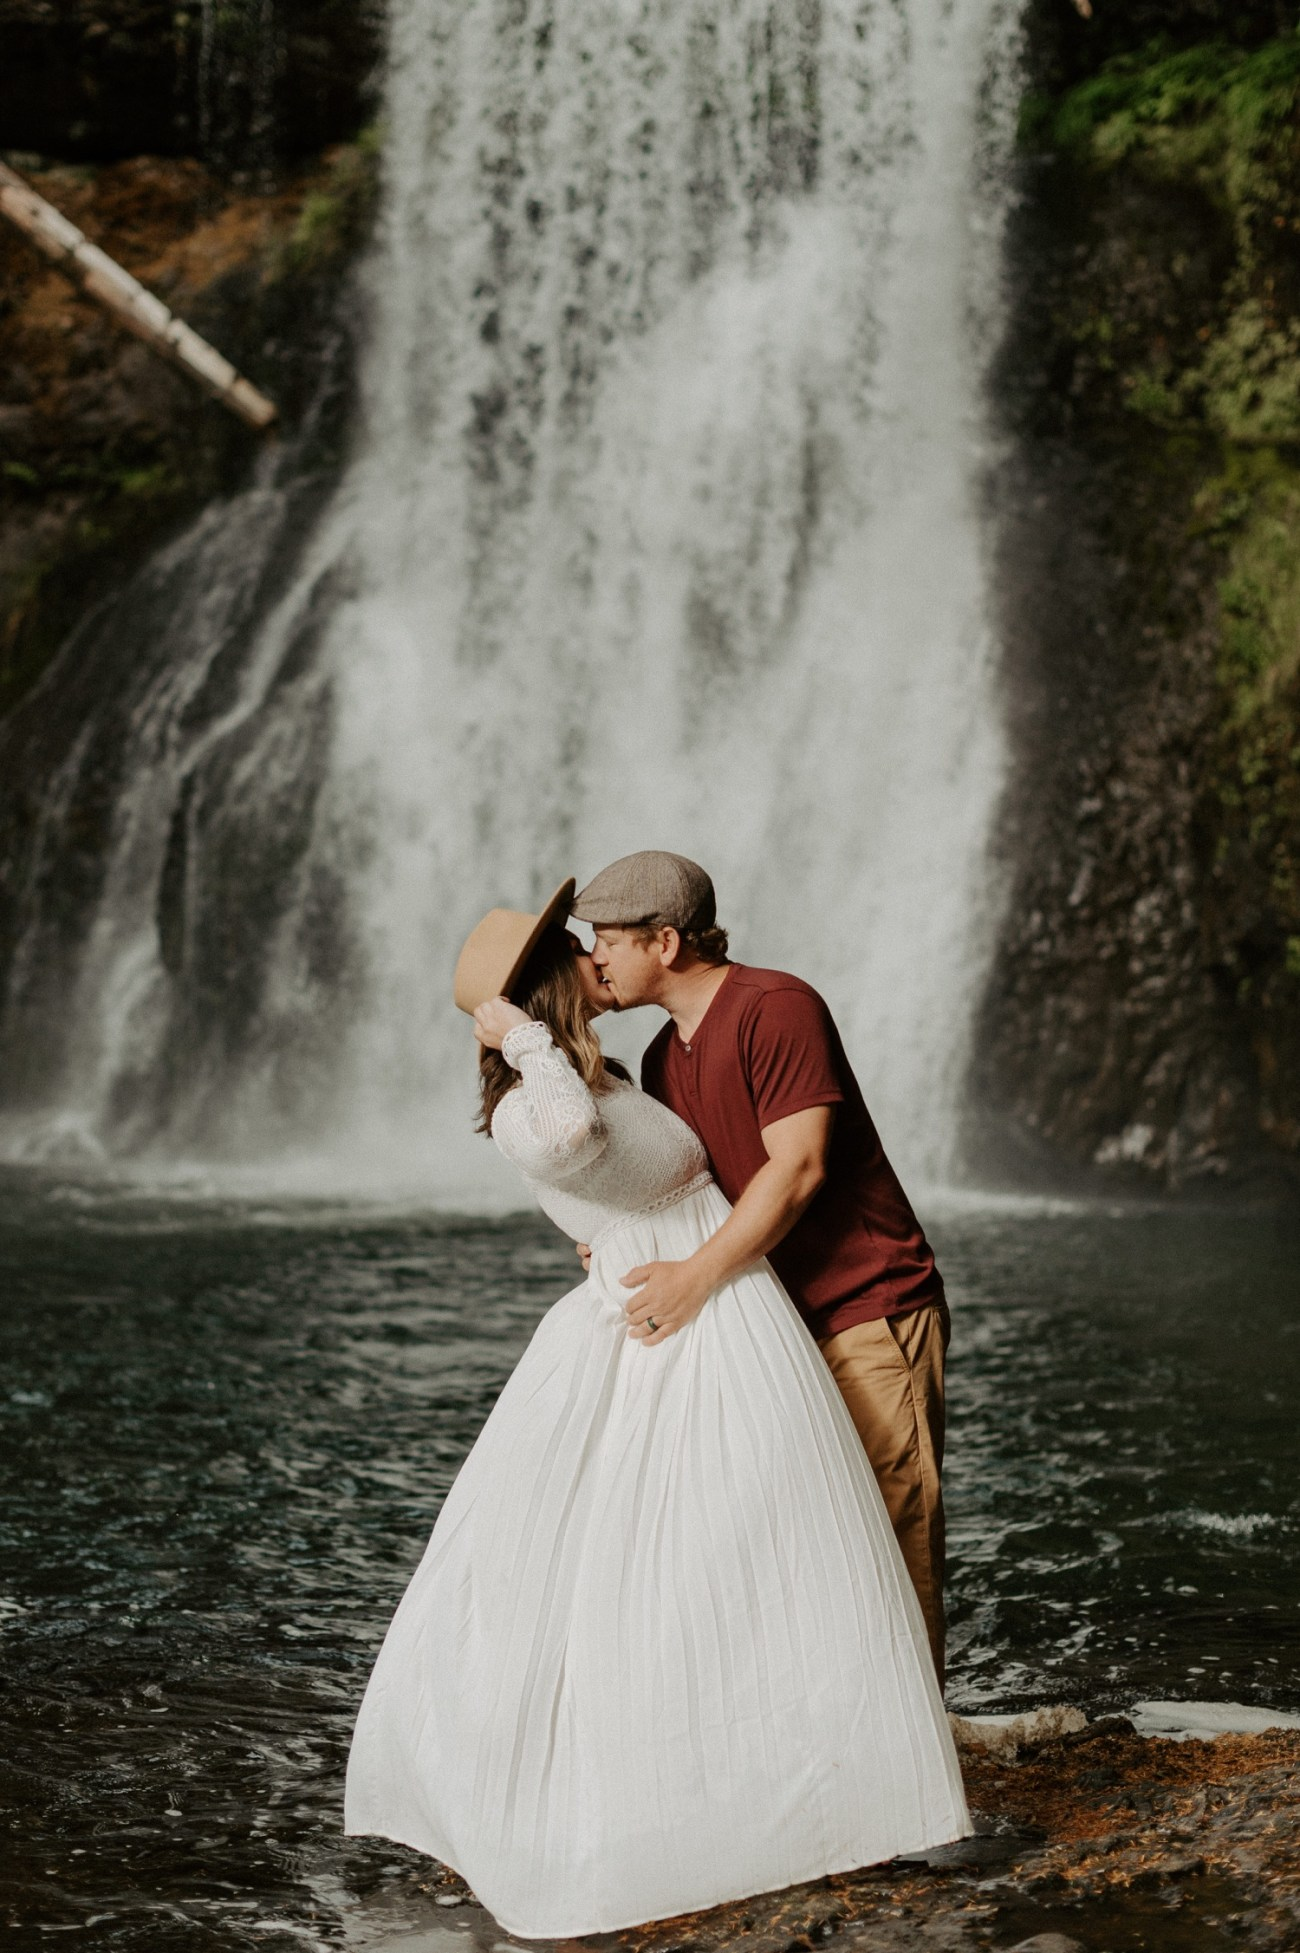 Silver Falls State Park Engagement Session North Falls Engagement Photos Portland Wedding Photographer Oregon Elopement Photographer Anais Possamai Photography 022